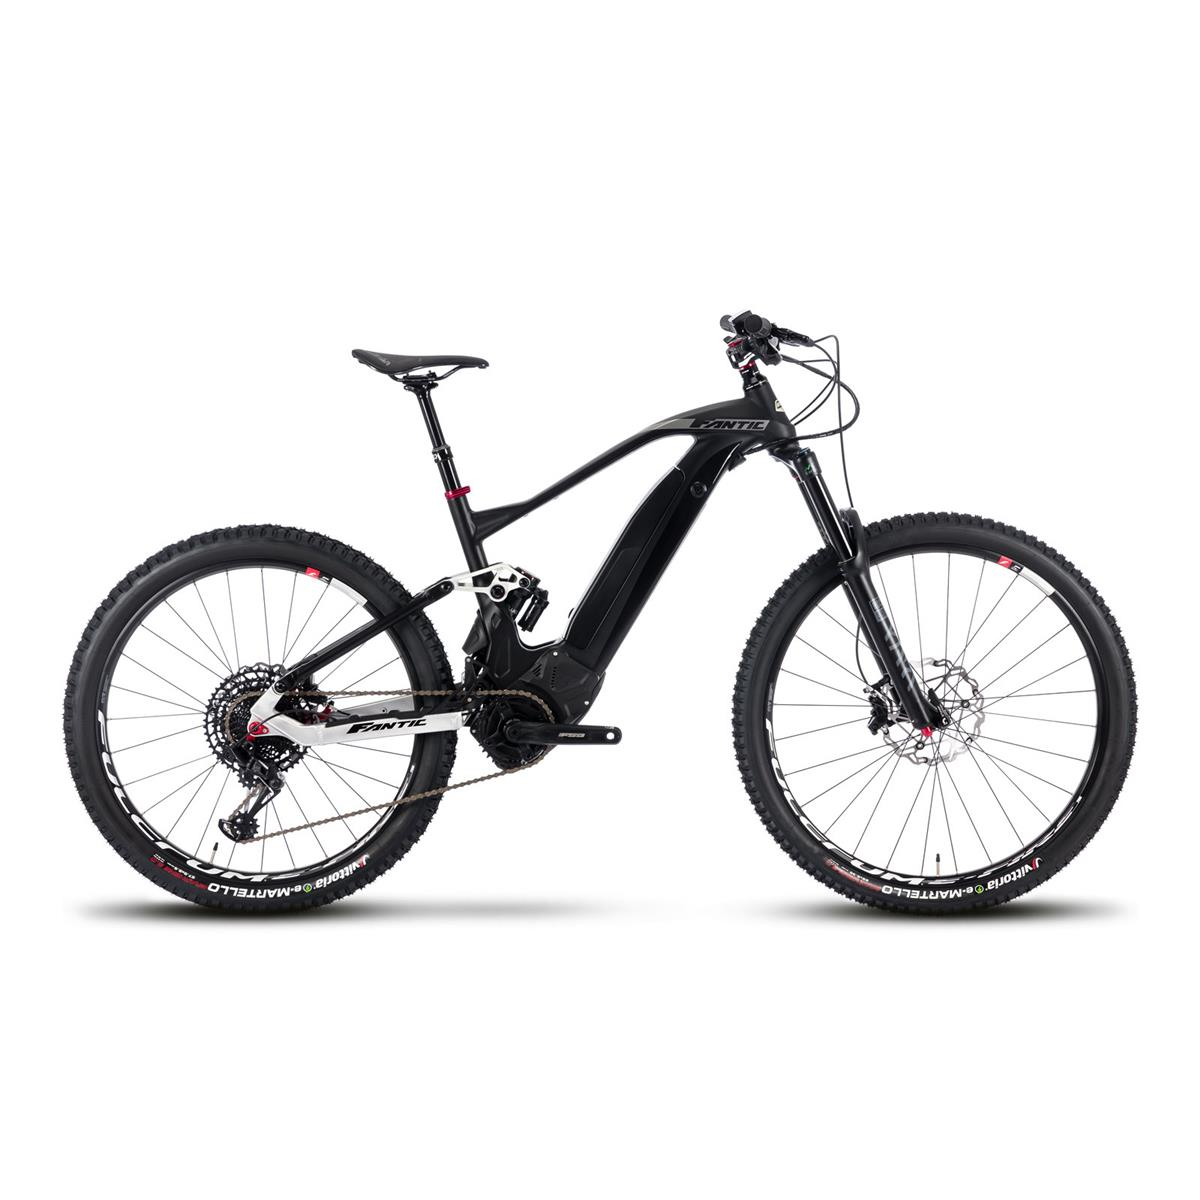 Integra XMF 1.7 Carbon 29''/27.5'' 170mm 12s 720wh Brose S-Mag Black 2021 Size S/39